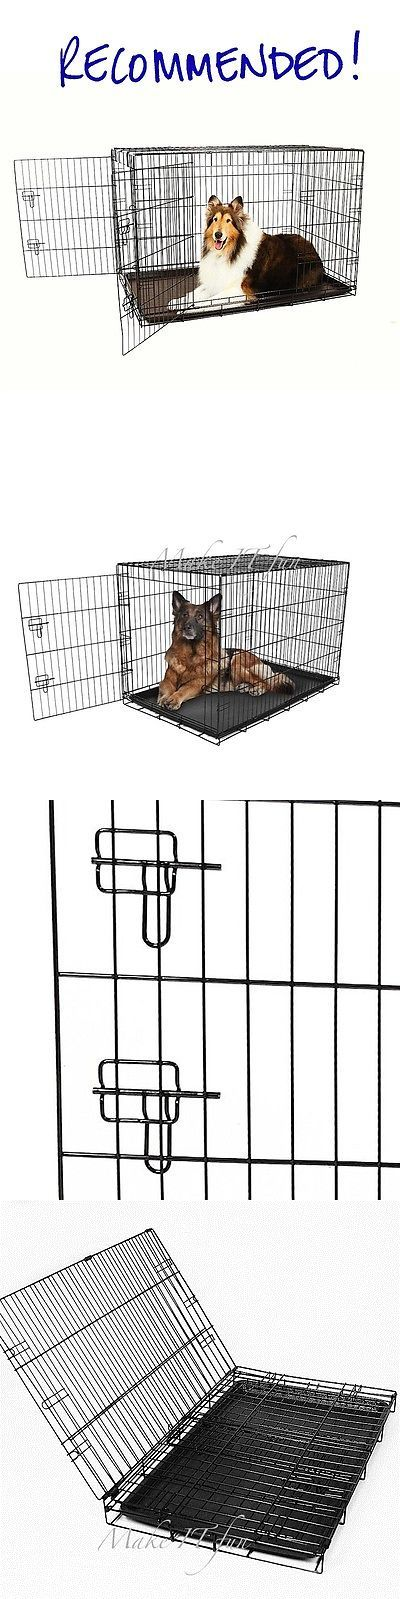 Cages and Crates 121851: 48 Inch Extra Large Dog Kennel 2 Door Heavy Duty Steel Crate Metal Wire Pet Cage BUY IT NOW ONLY: $77.1